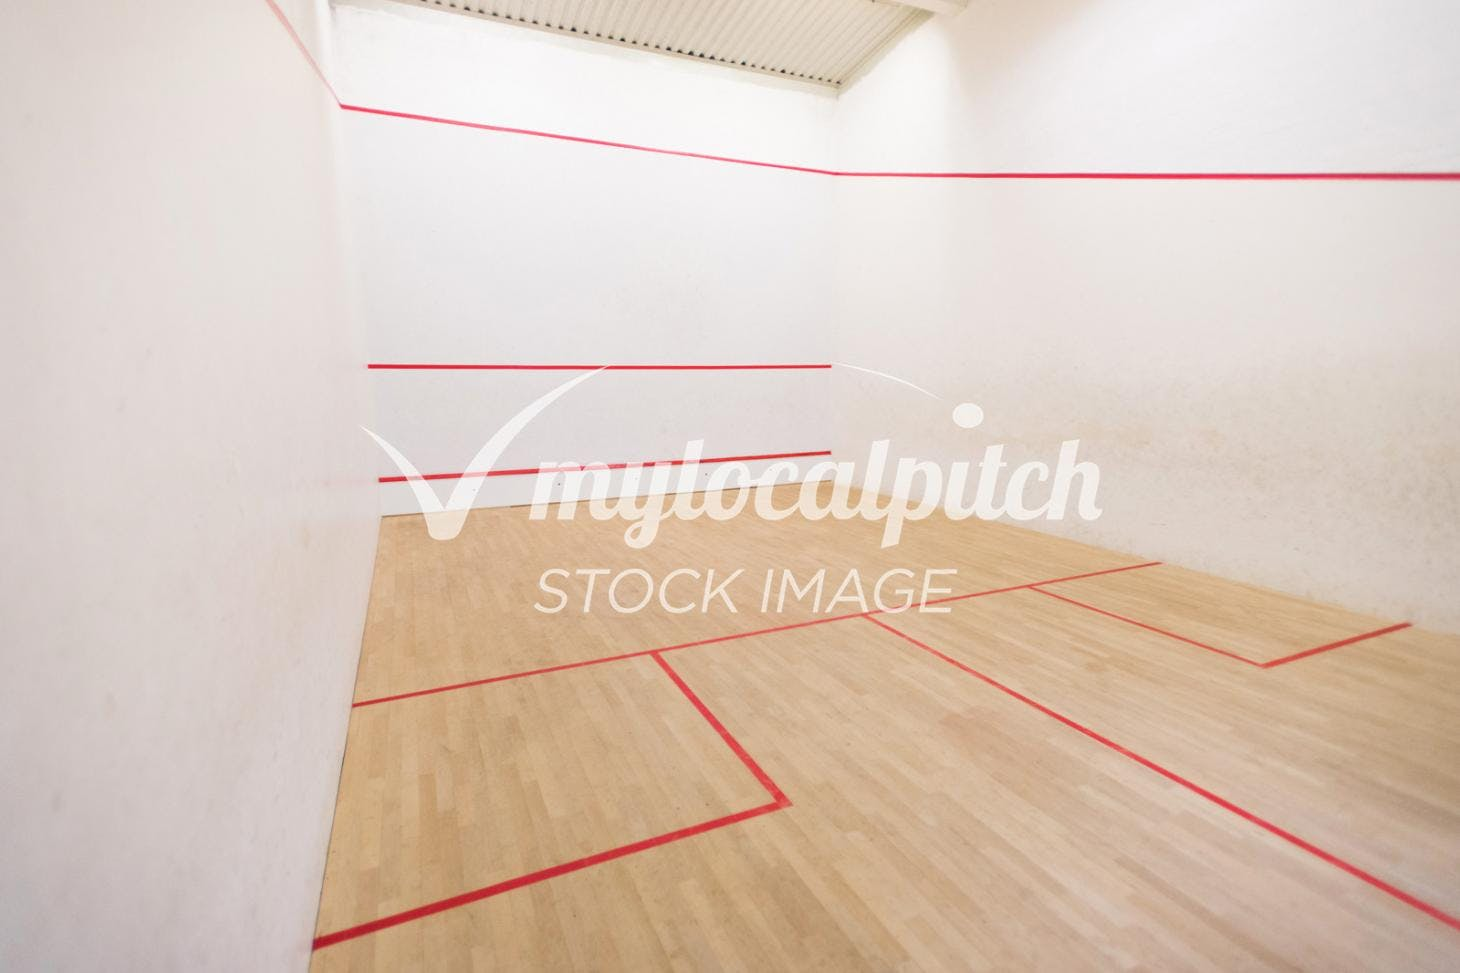 Queens Tennis Club Indoor | Hard squash court